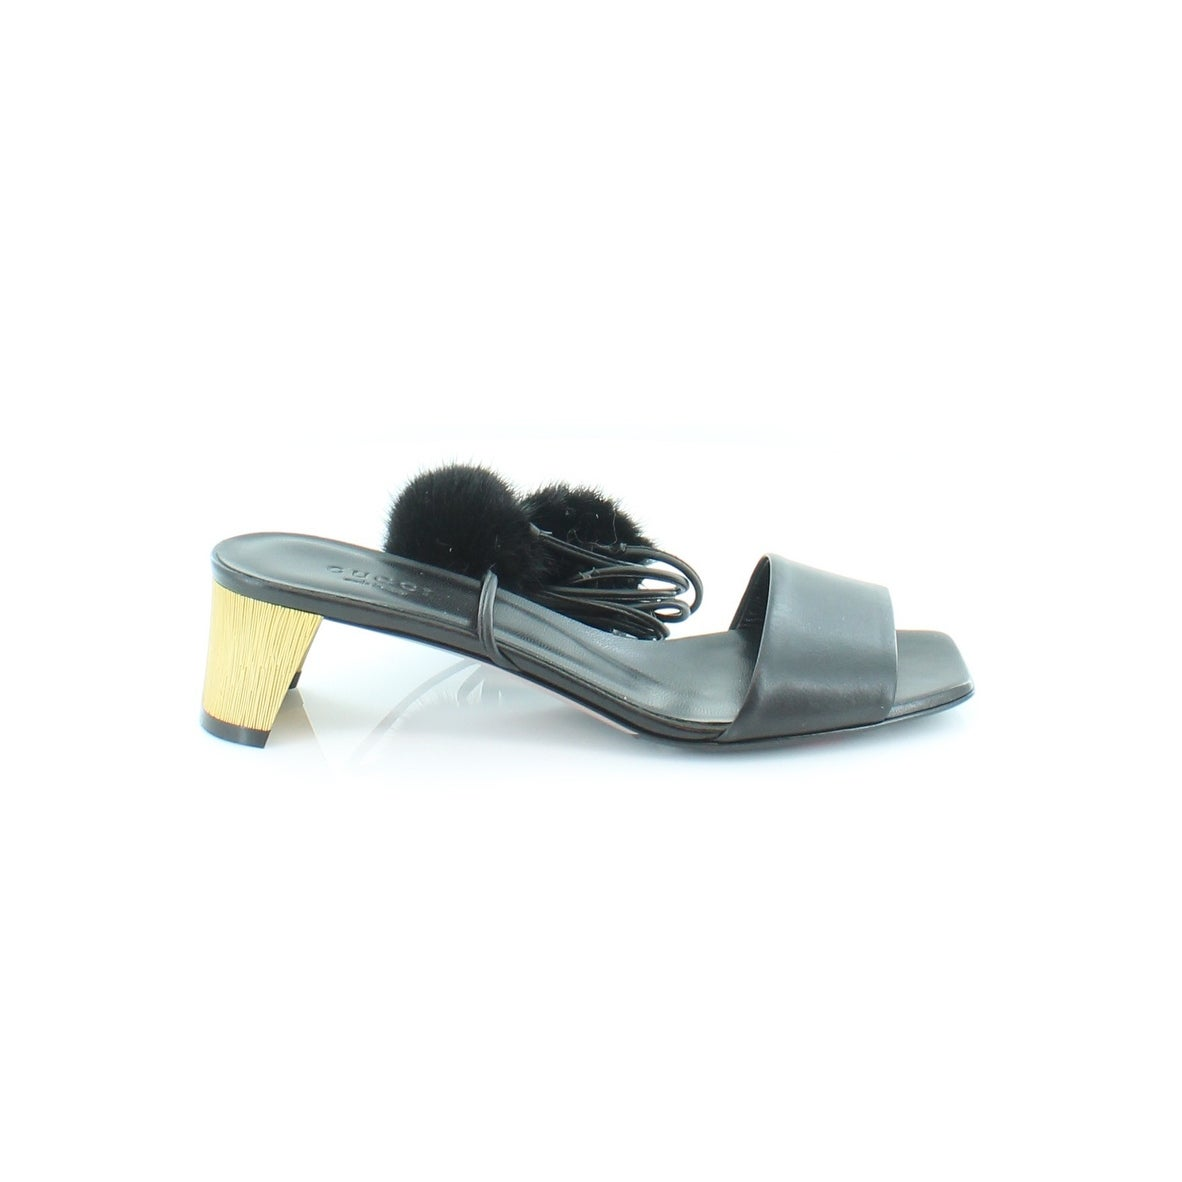 2dbf330cc57 Shop Gucci Heloise Sandal Women s Sandals Nero Nero - 6 - Free Shipping  Today - Overstock - 21553197